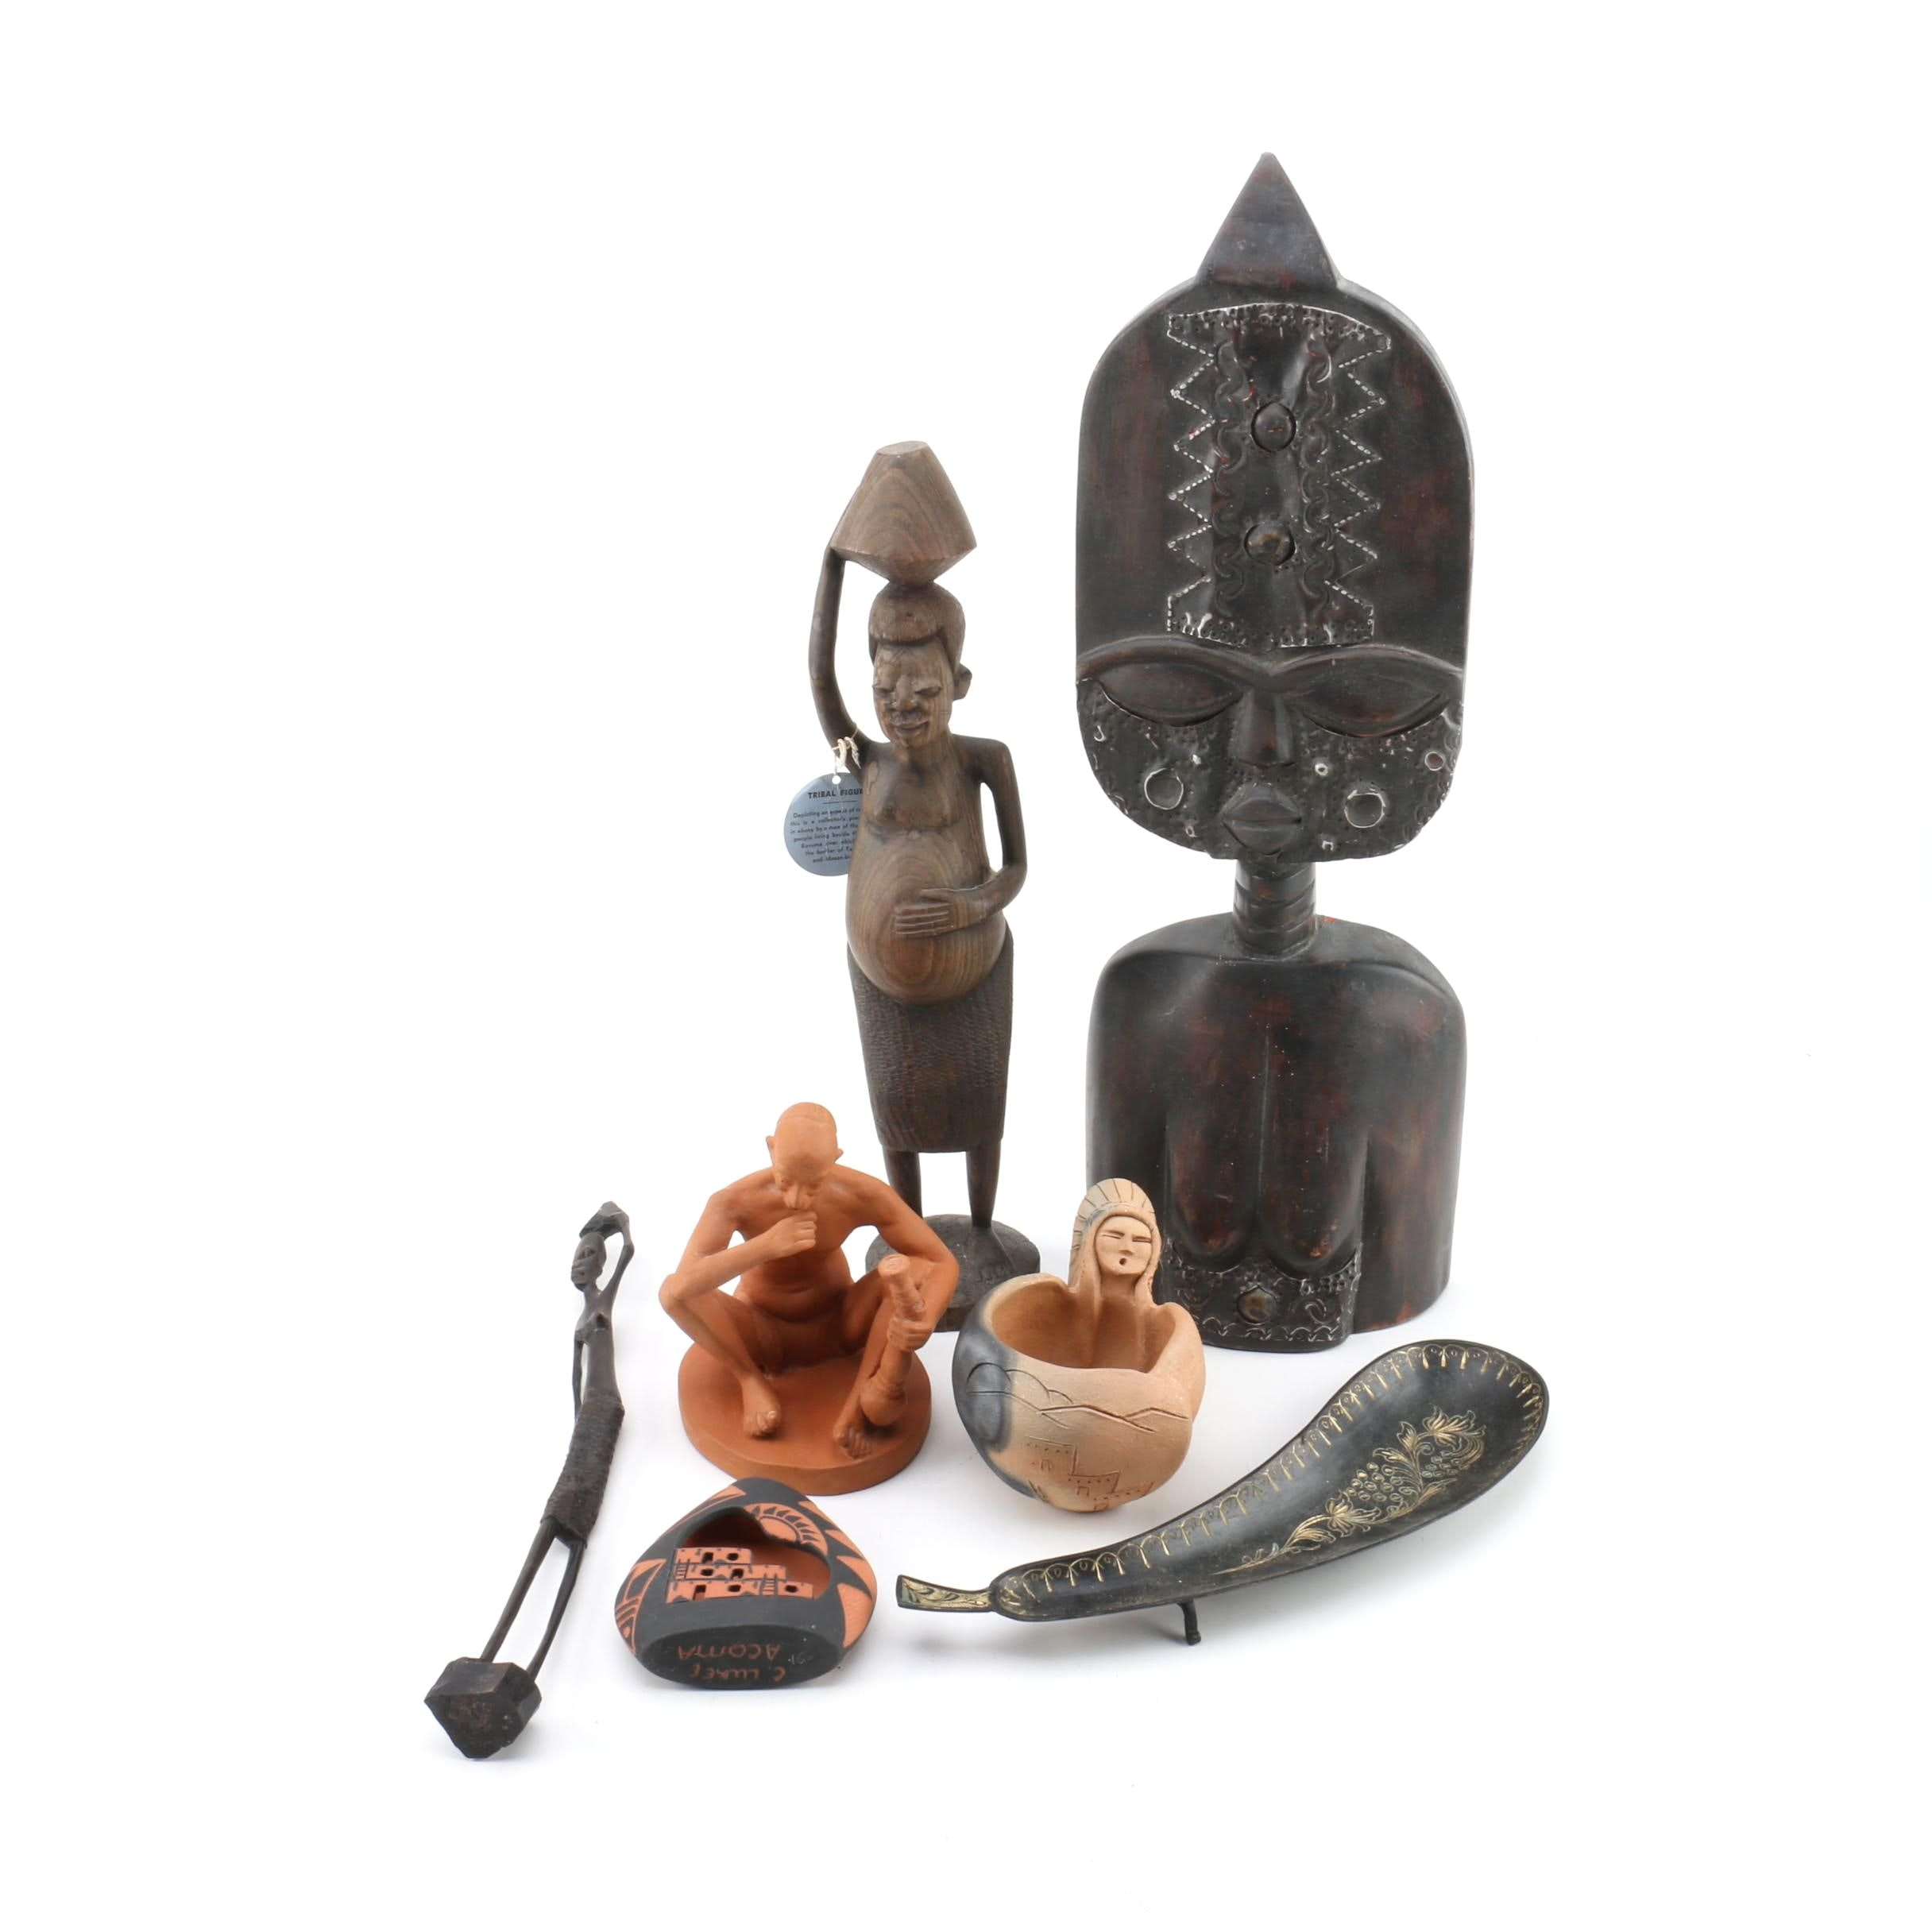 Assortment of Native American and African Style Decor